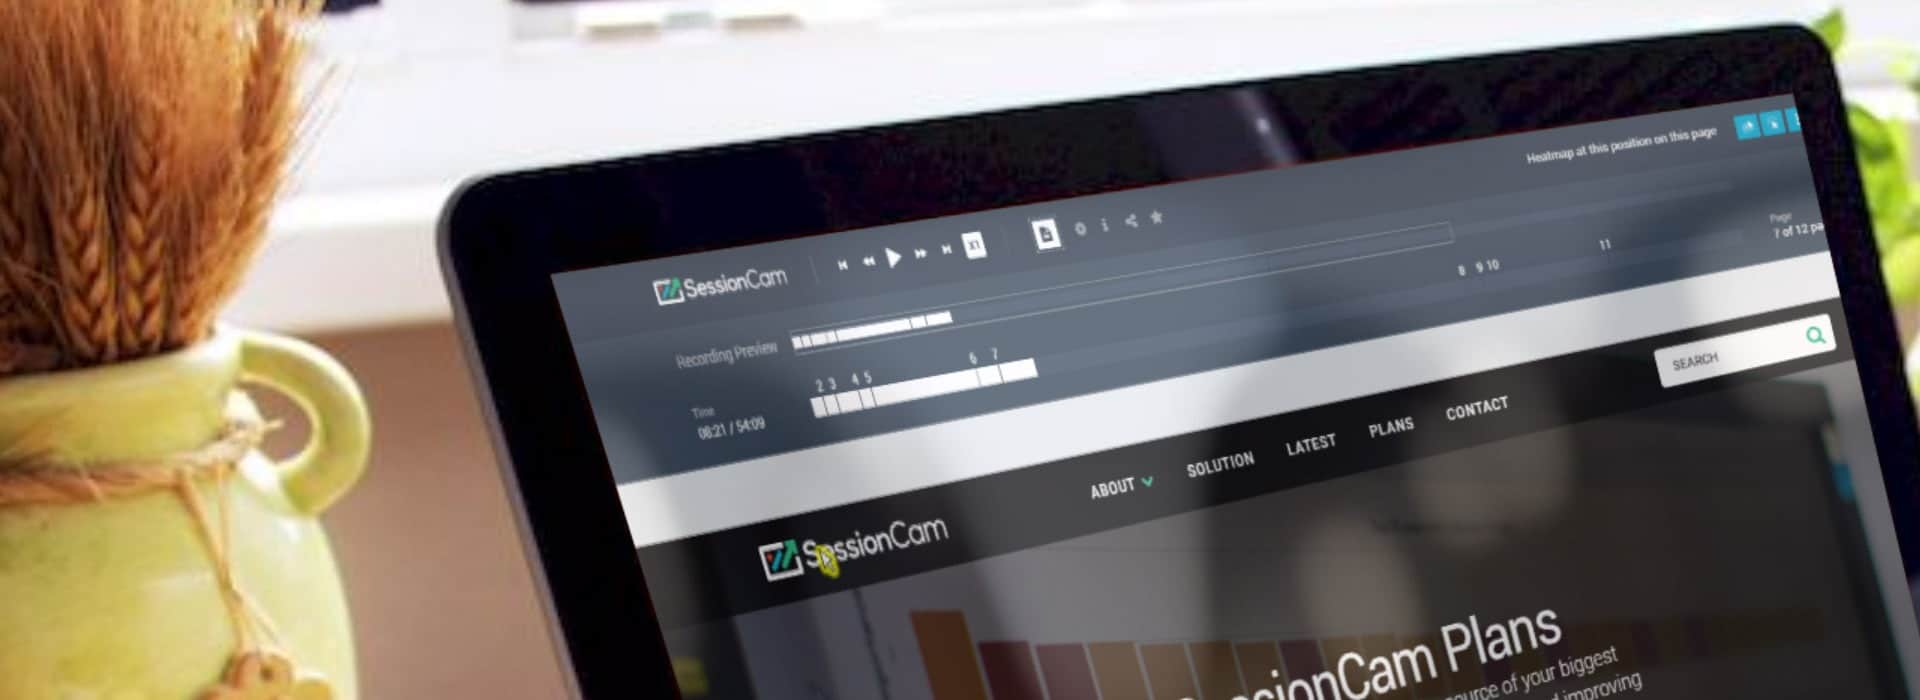 SessionCam Embraces Responsive Web Design